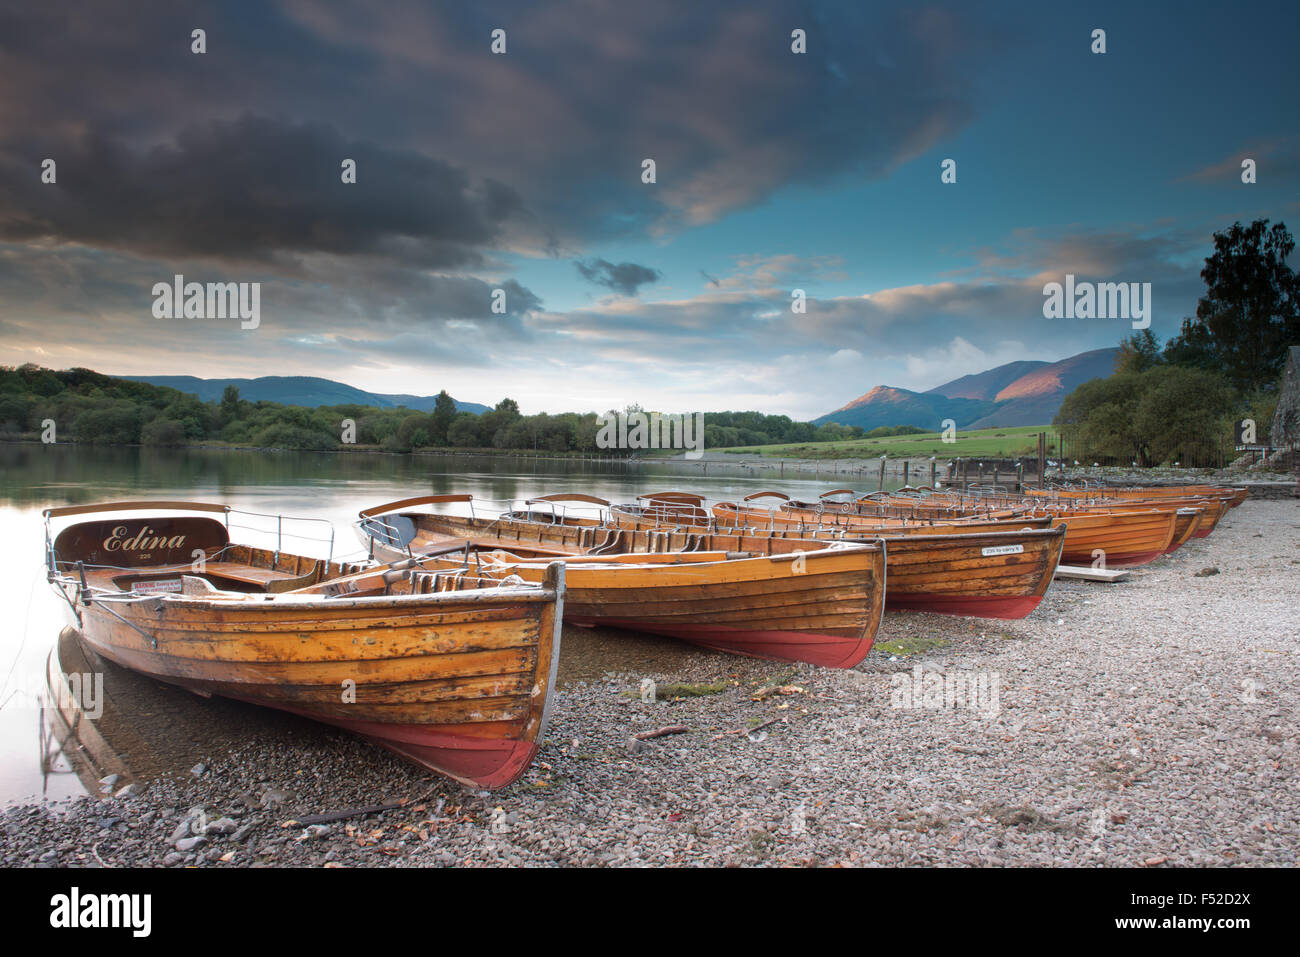 Rowing boats on the shore of Derwent Water near Keswick at sunset, Lake District, Cumbria, England, Uk, Gb - Stock Image